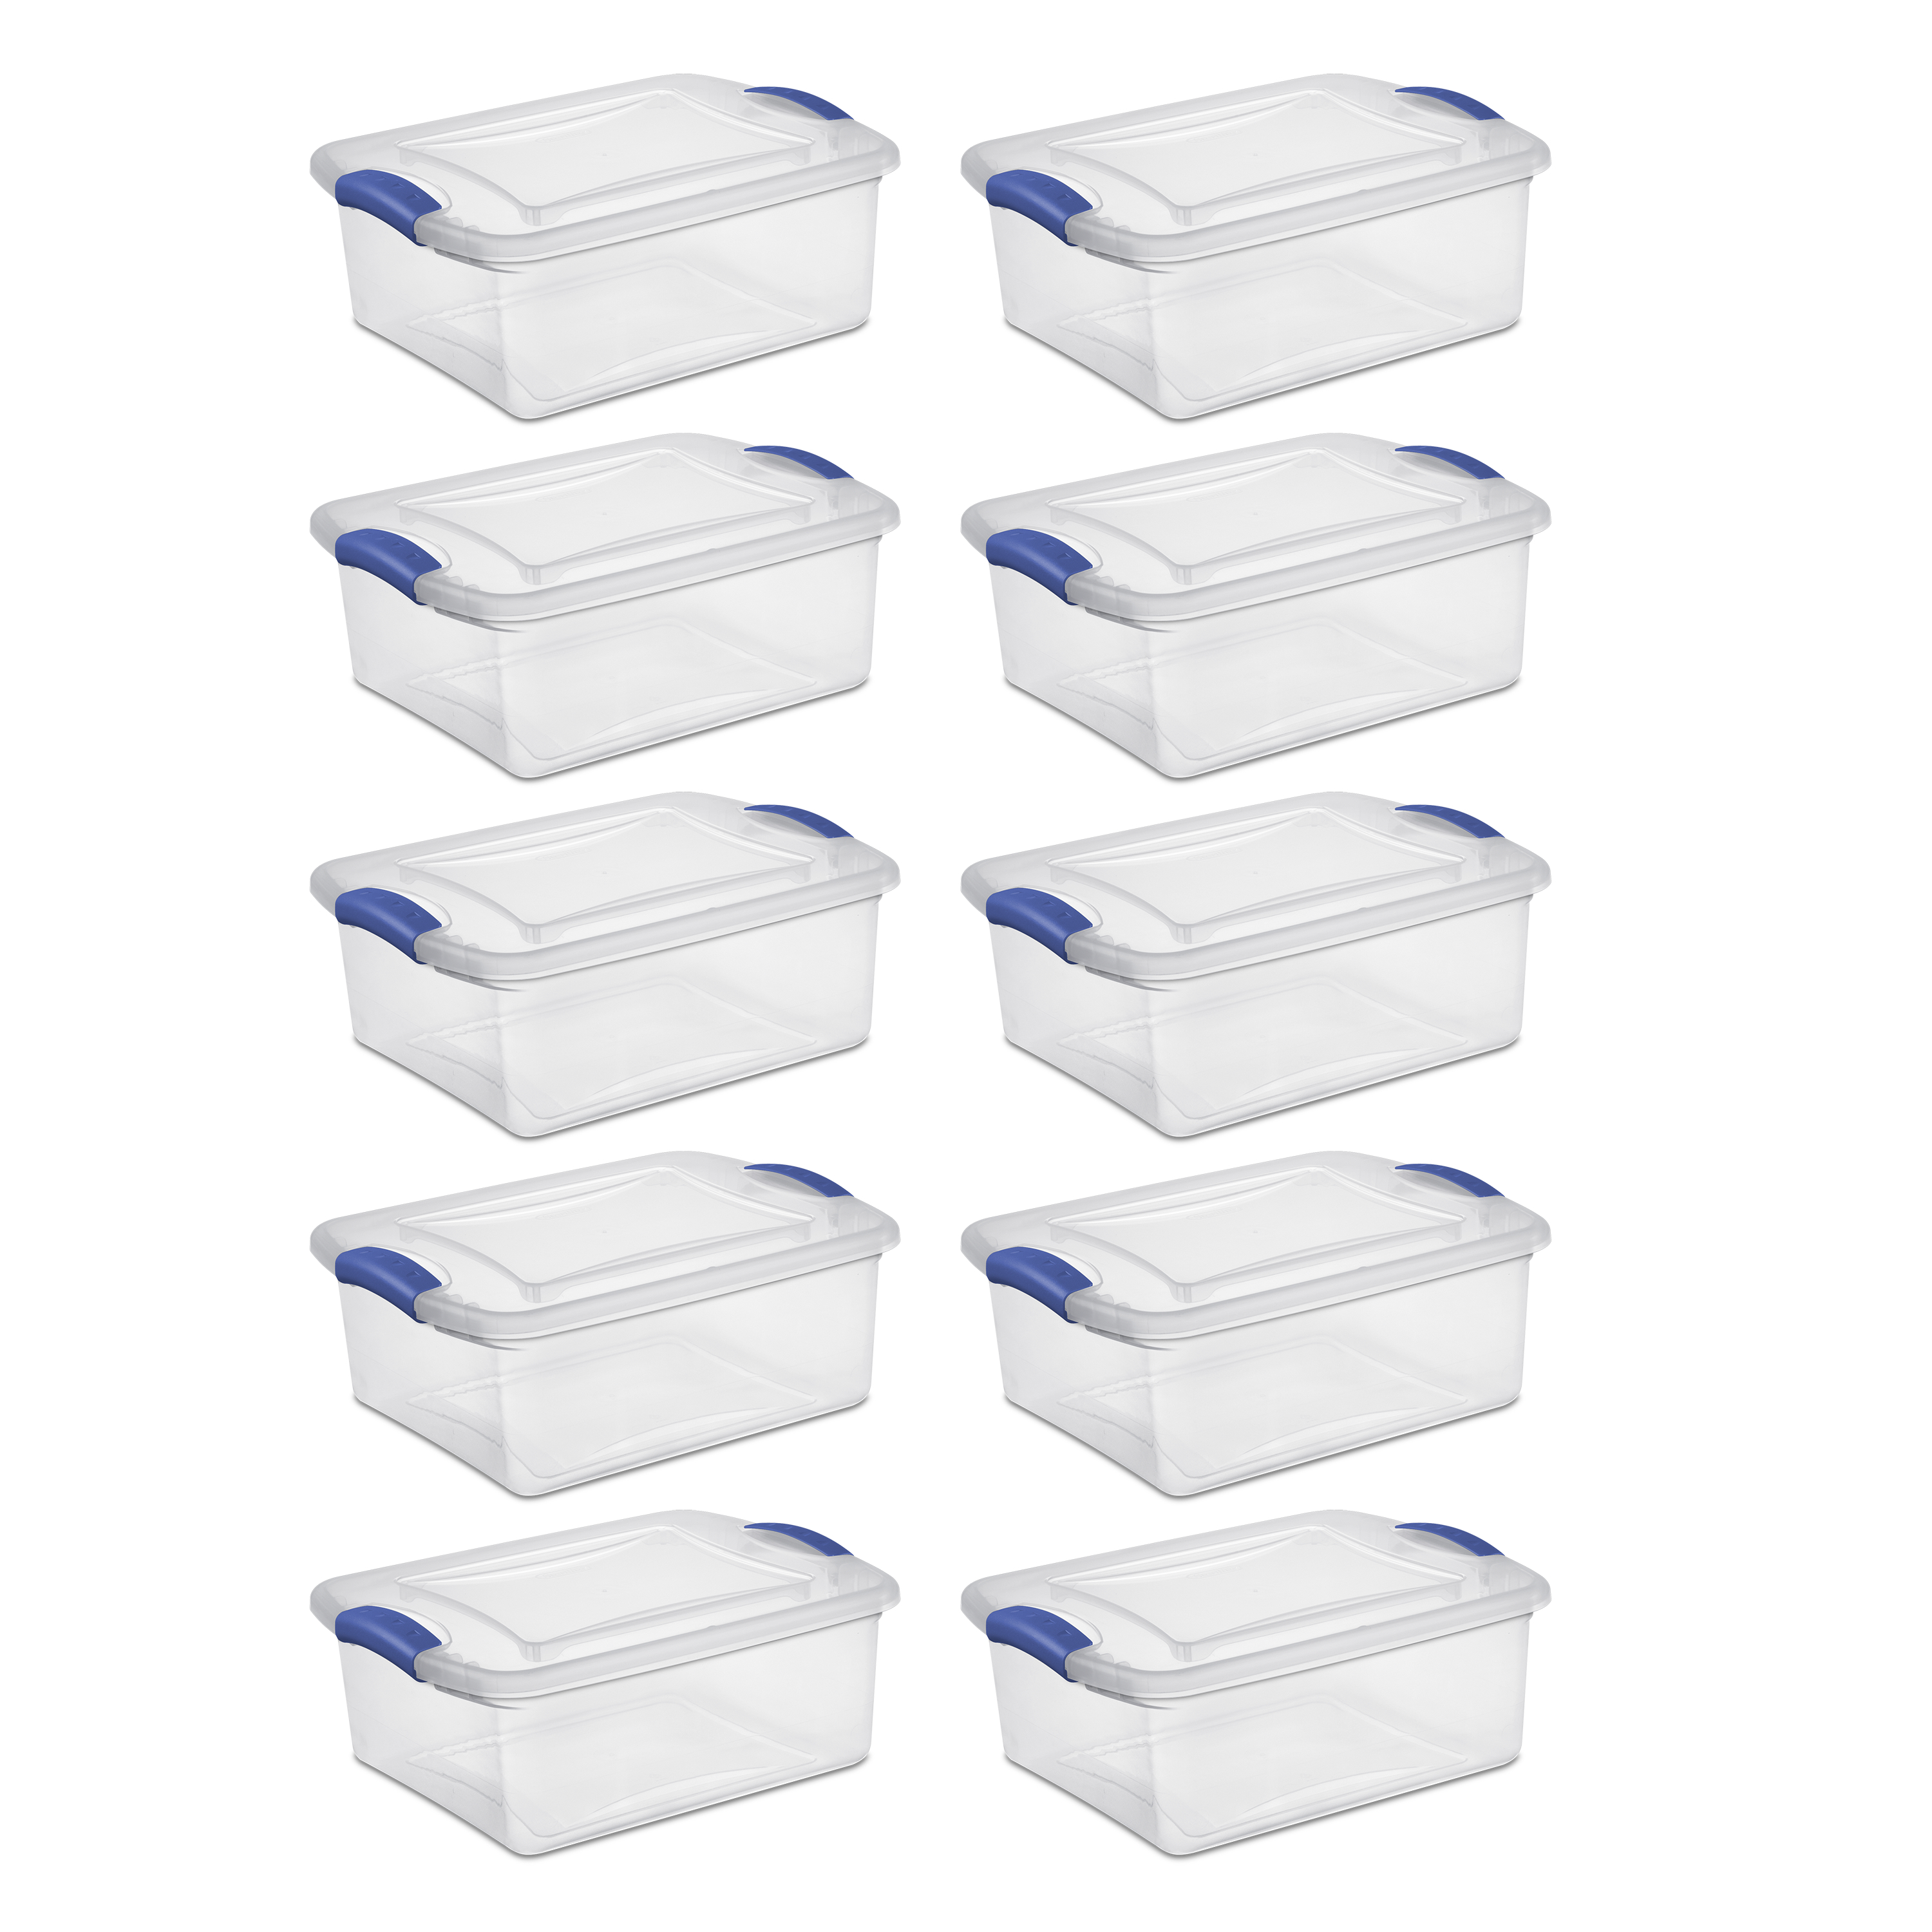 Sterilite, 15 Qt./14 L Latch Box, Stadium Blue, Case of 10